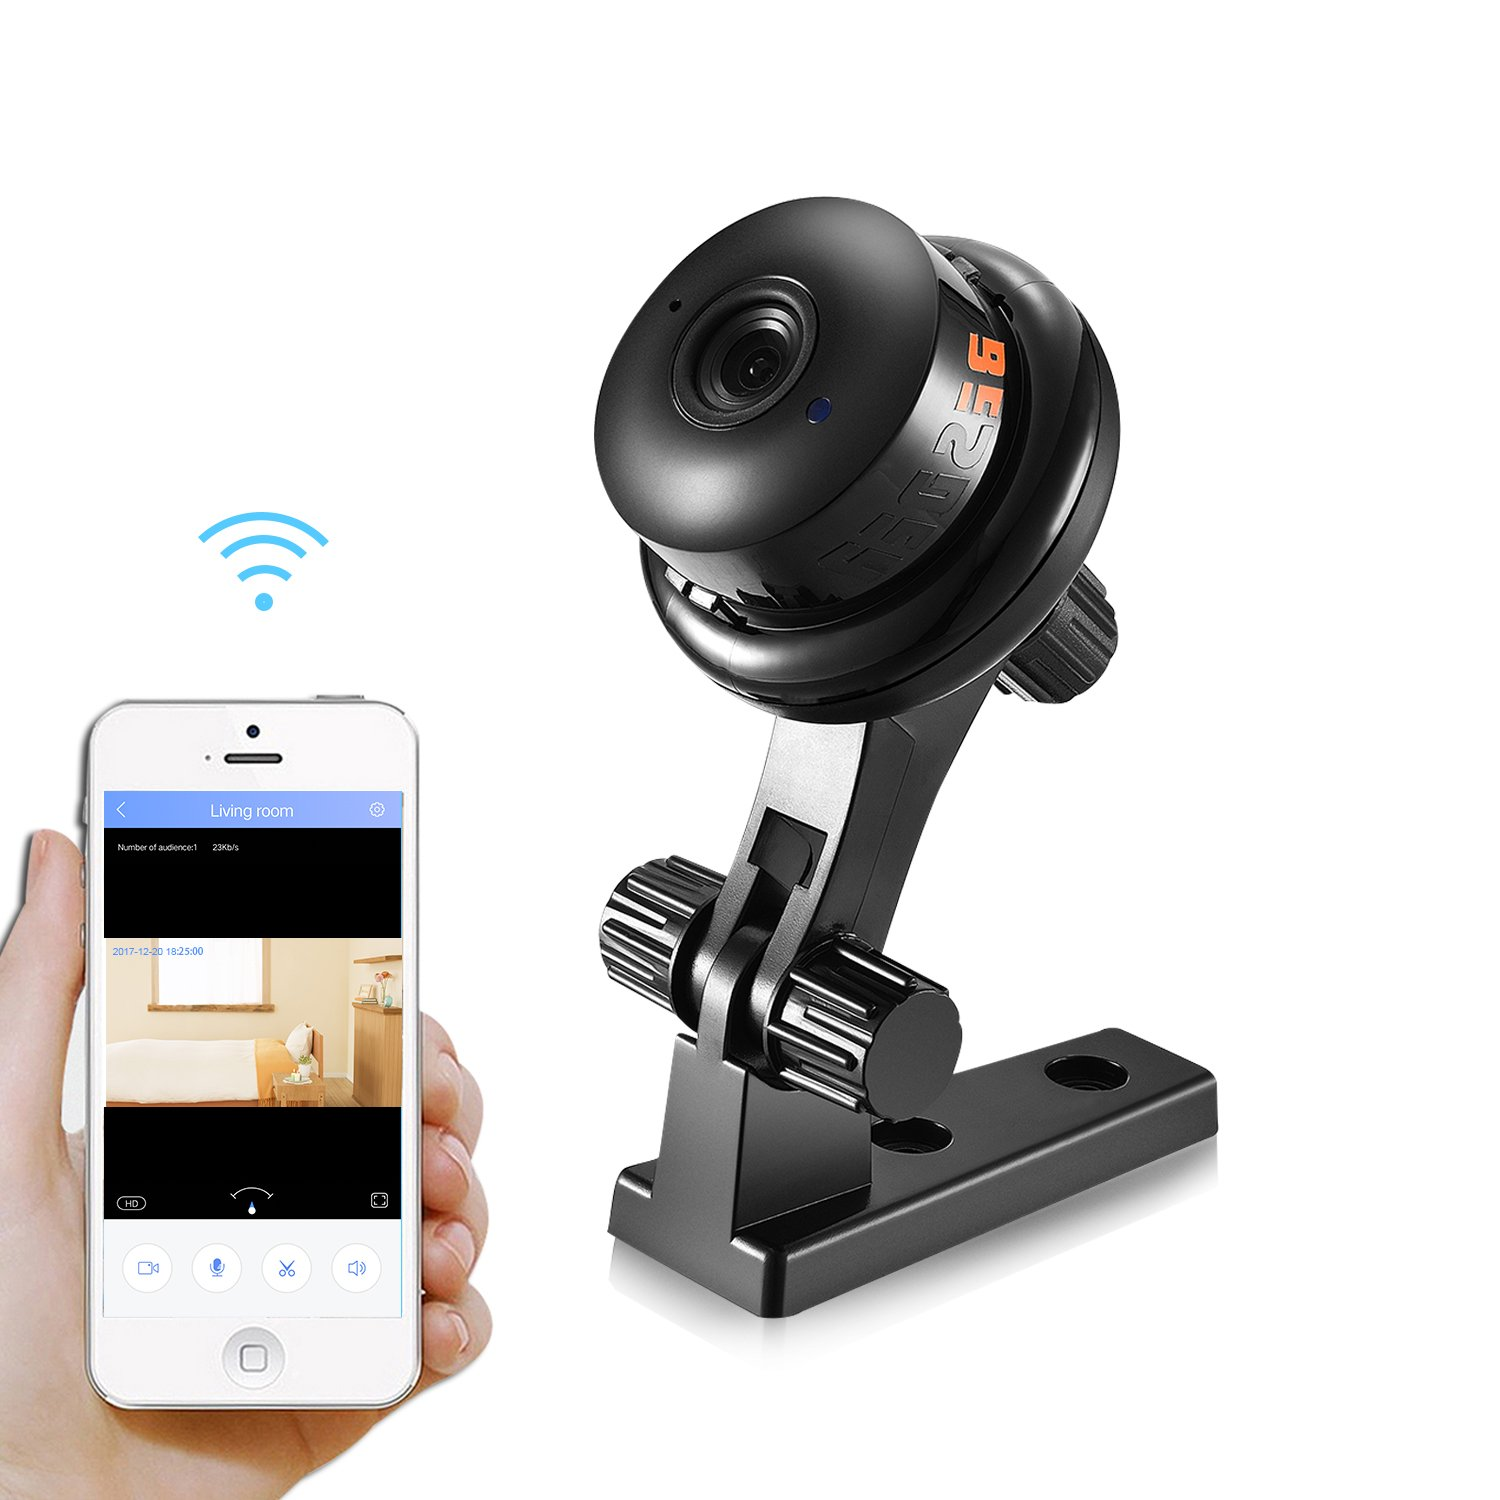 BESDER 720P HD Mini WiFi Camera, Wireless Security IP Camera, Home Nanny  Camera with Night Vision Two Way Audio Motion Detection Email Photo Baby